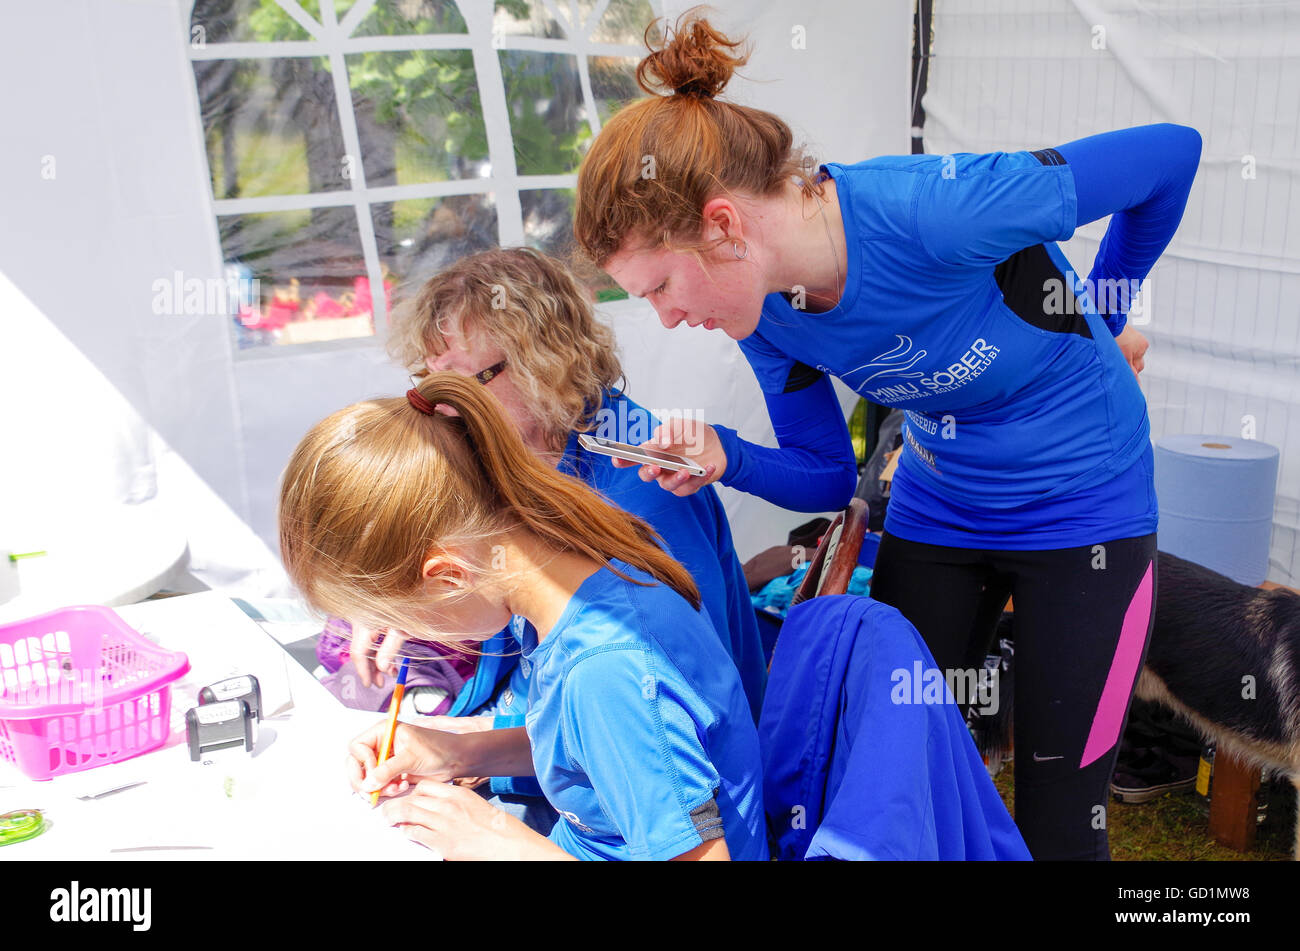 Organizers and judges marking the results in dog agility competitions. Three girls in a tent, writing down the results. - Stock Image